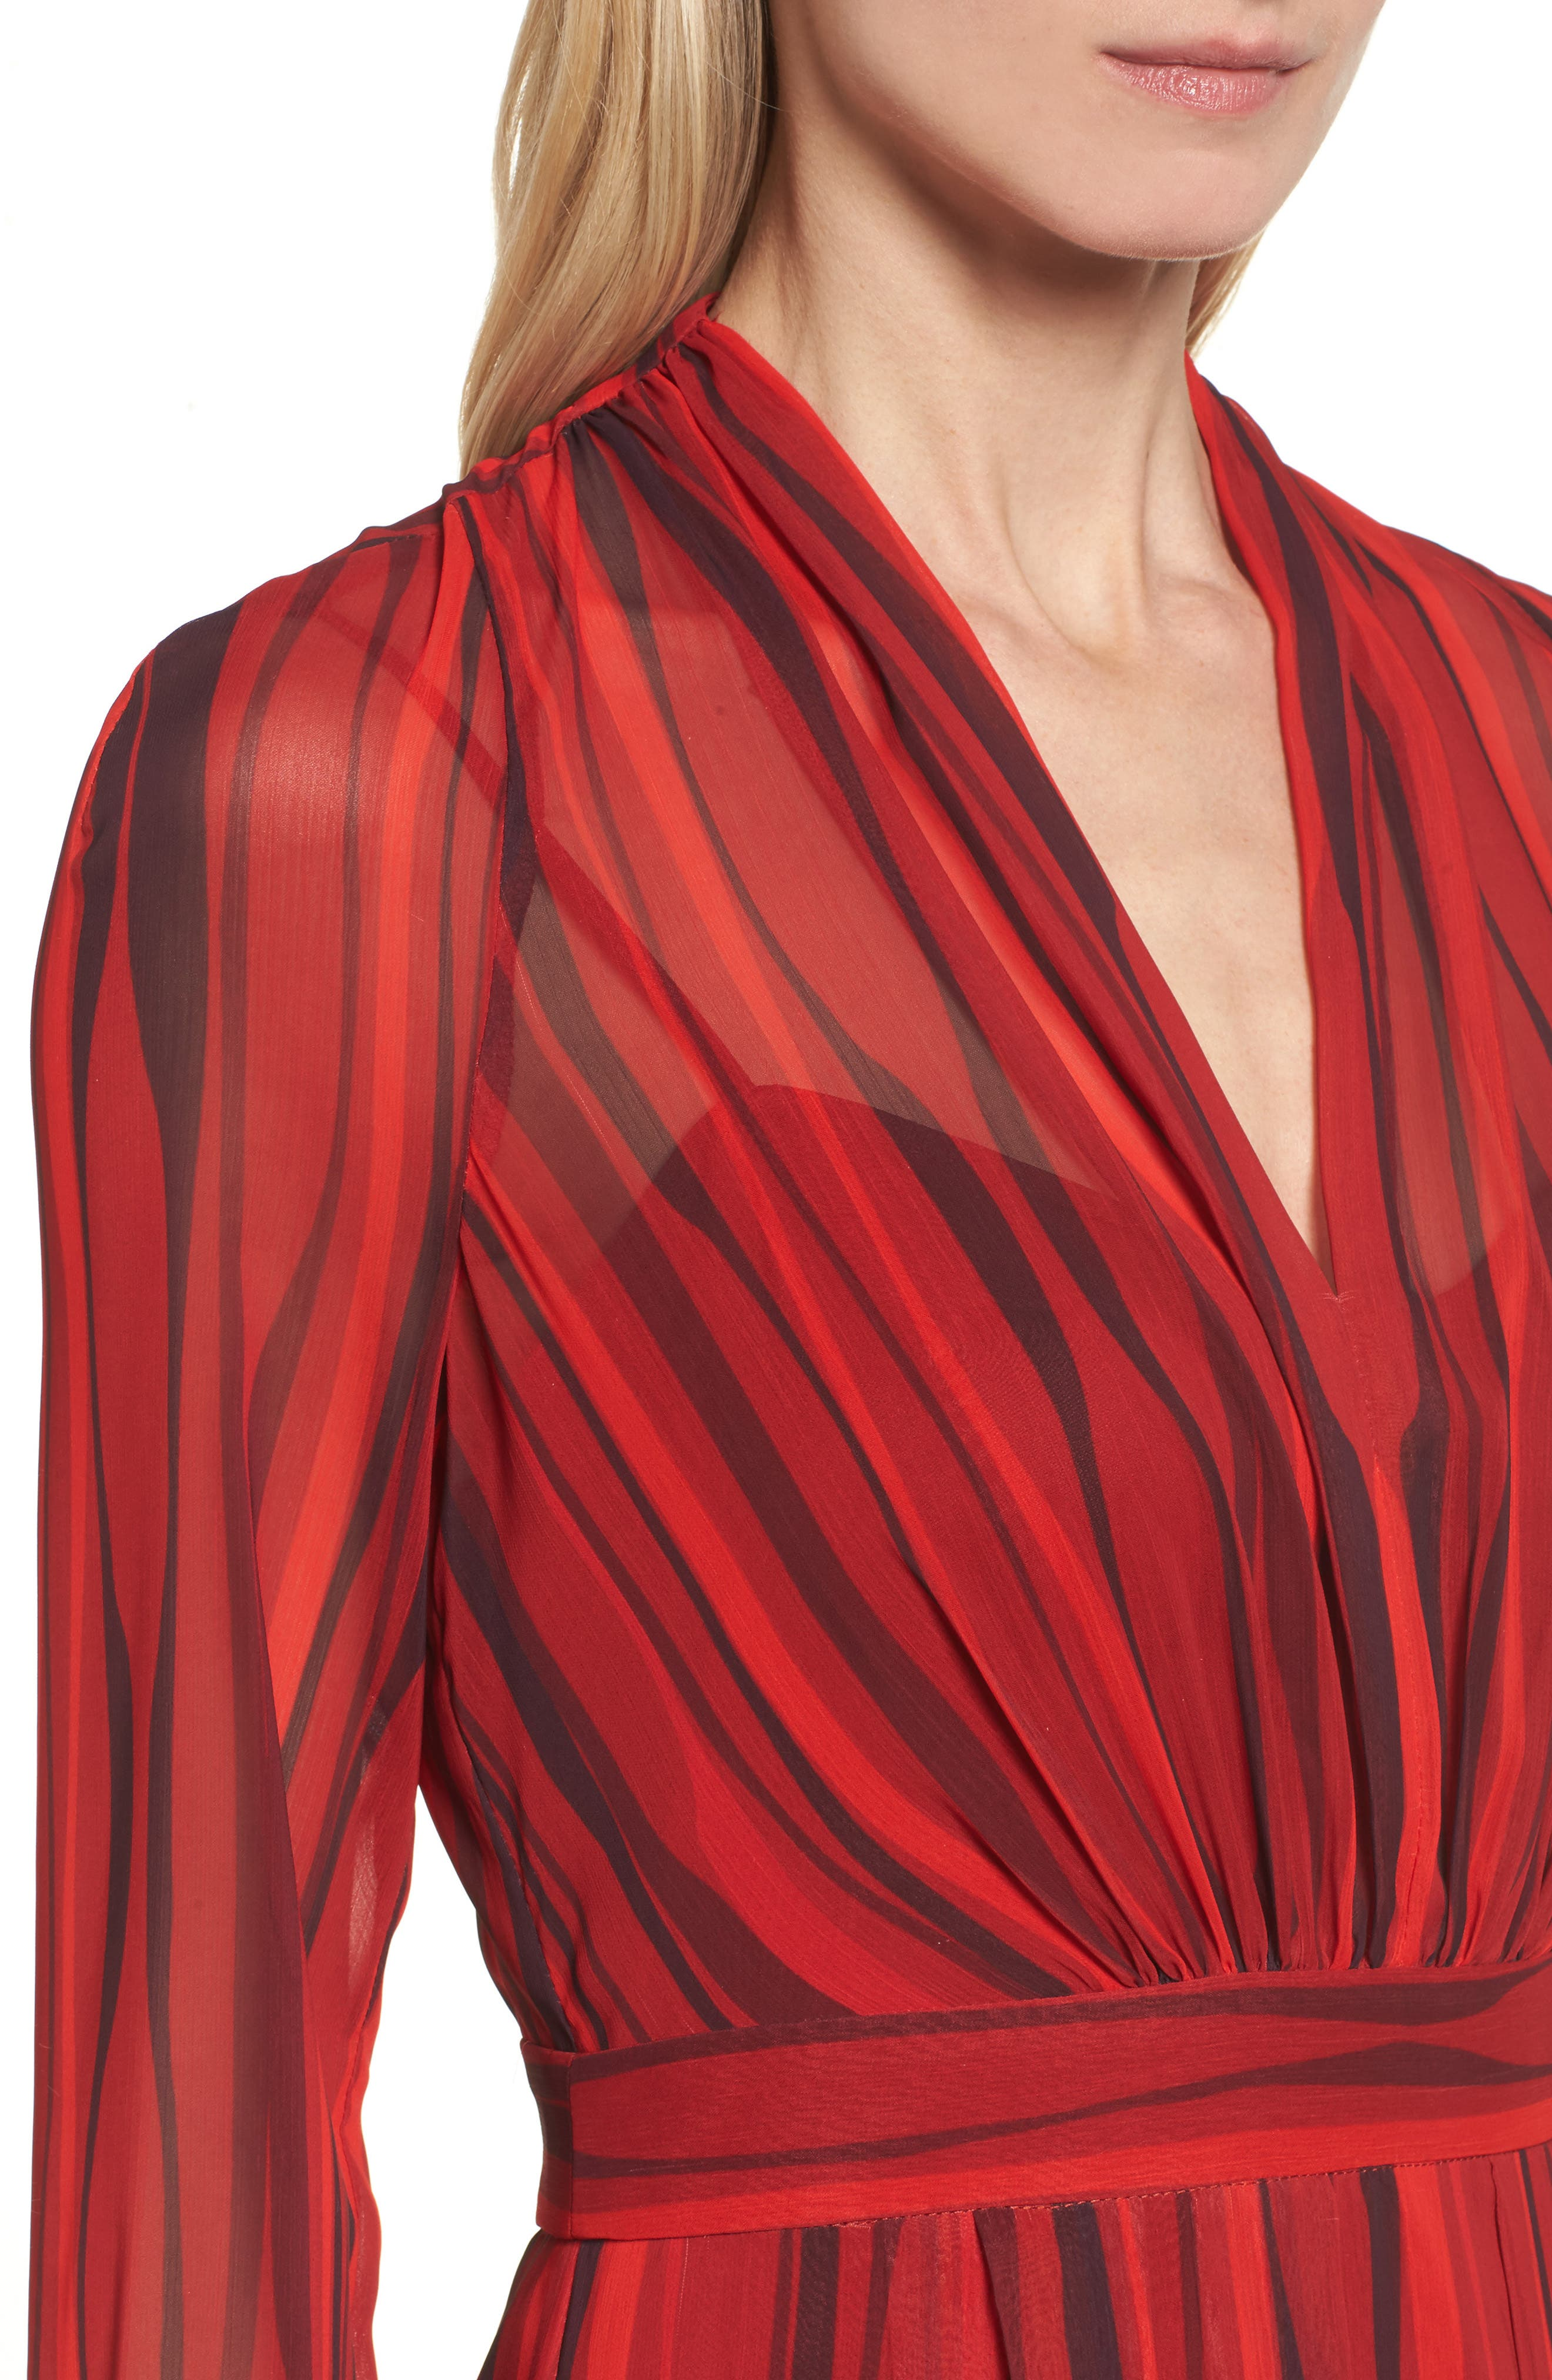 Fit & Flare Dress,                             Alternate thumbnail 4, color,                             Titian Red/ Black Combo